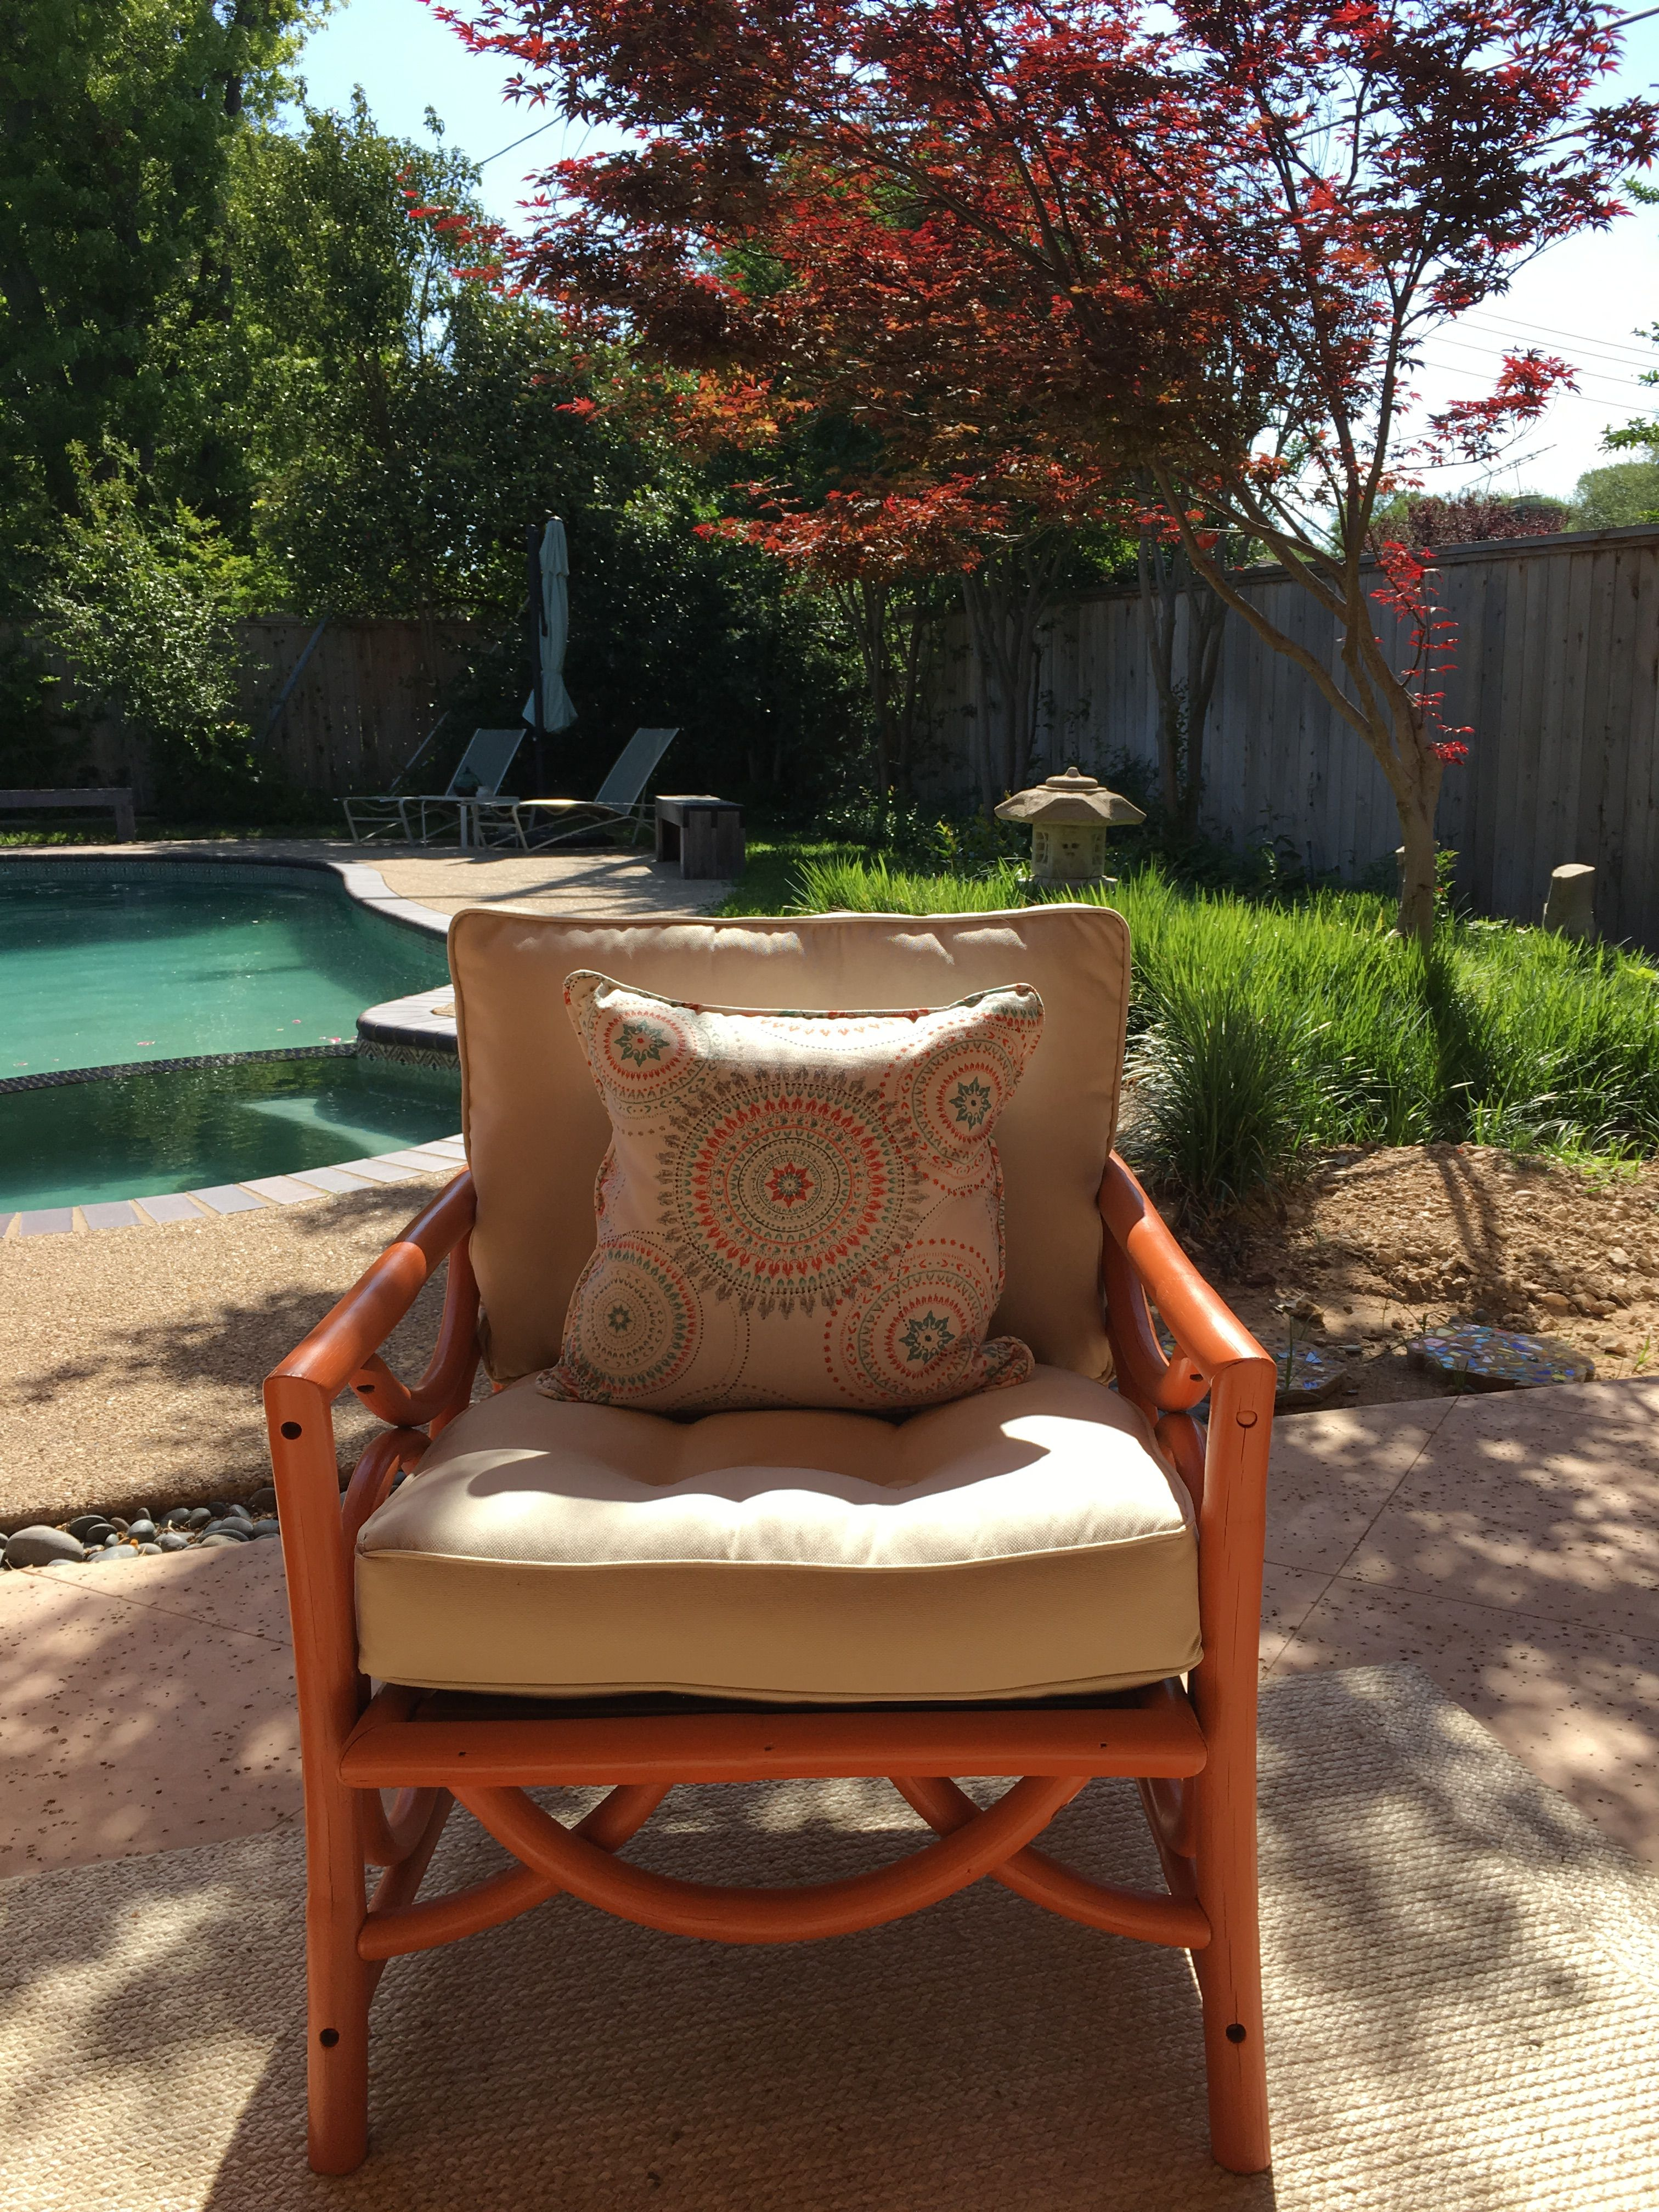 Pin by Melanie Towle on Outdoor Living Spaces | Outdoor ...